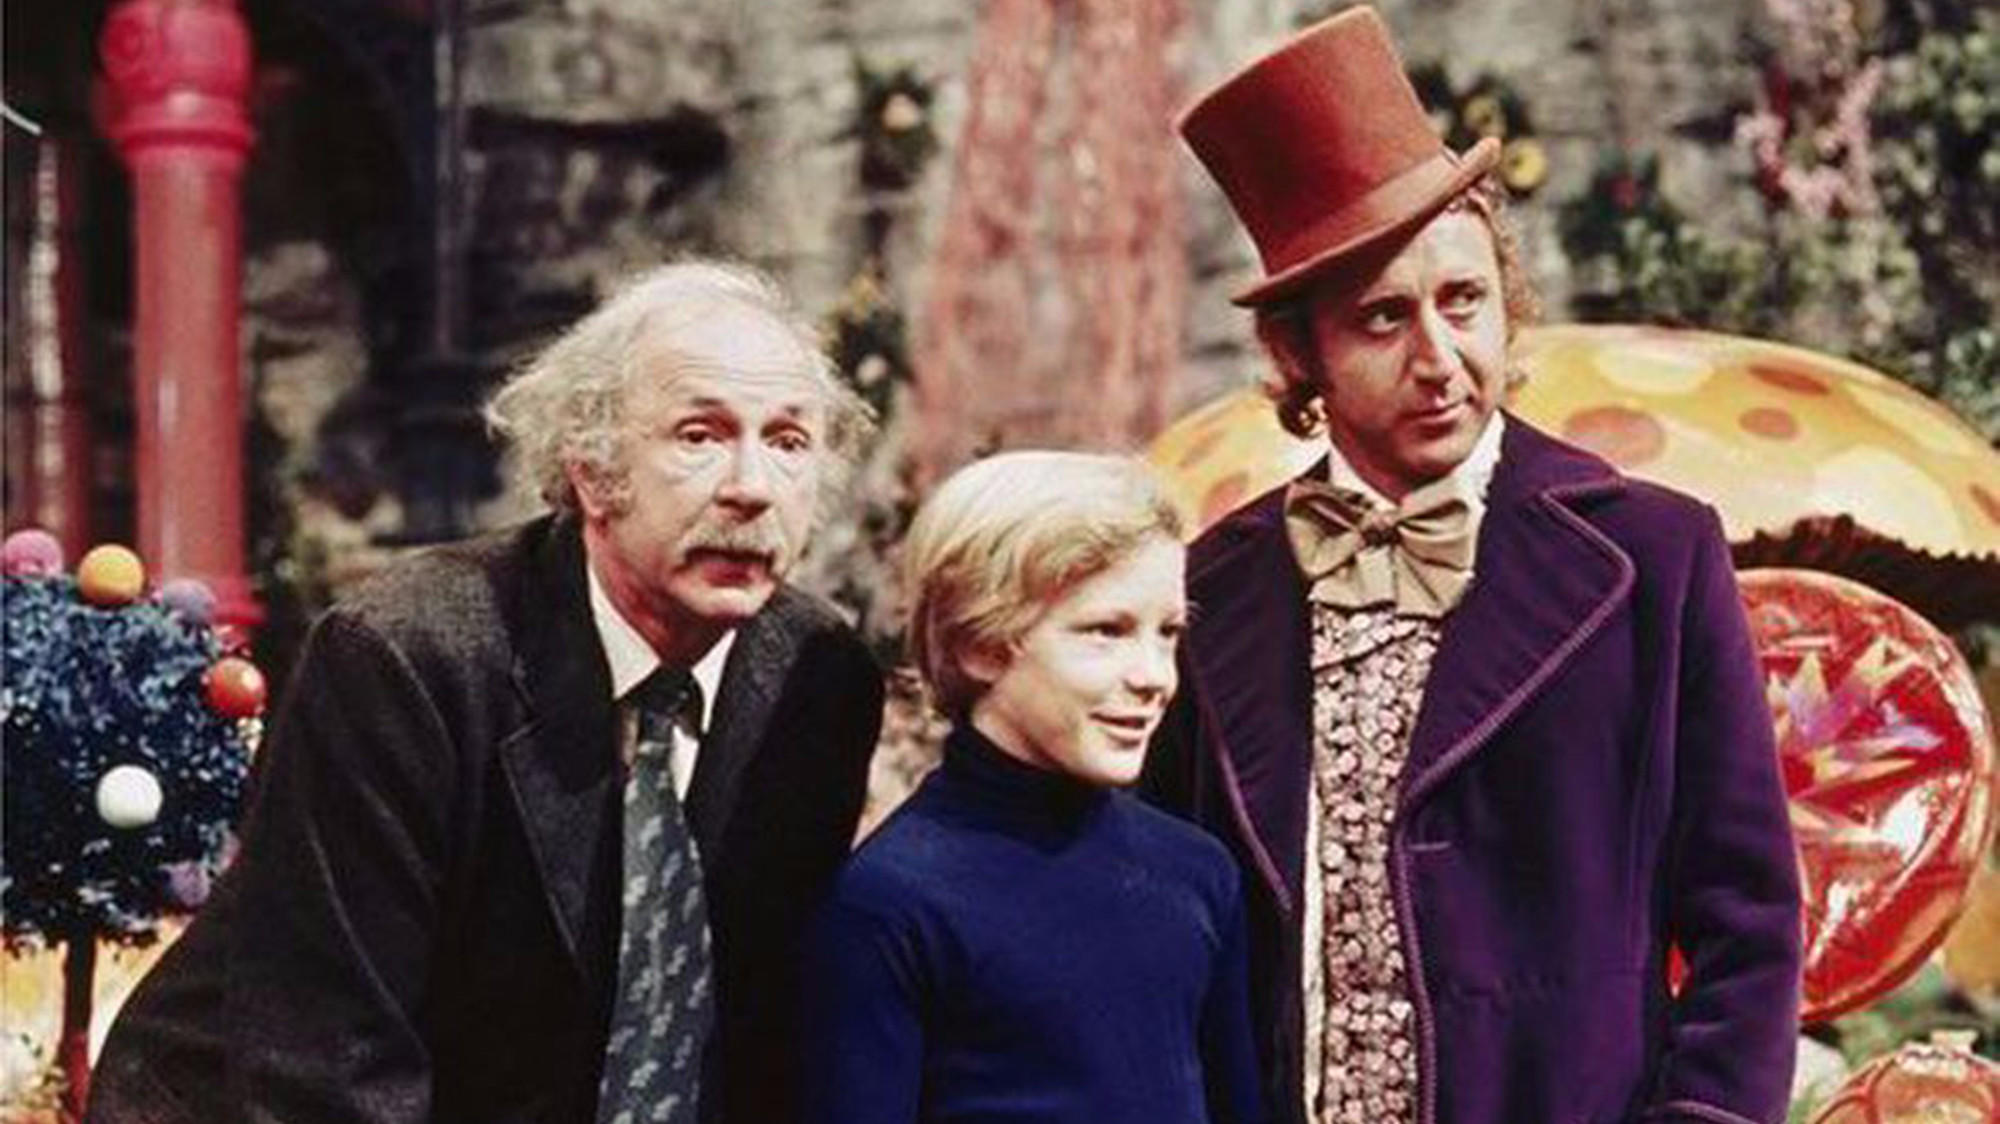 """The 1971 film """"Willy Wonka & the Chocolate Factory"""" starred Jack Albertson, left, Peter Ostrum and Gene Wilder. (Felicity Dahl)"""